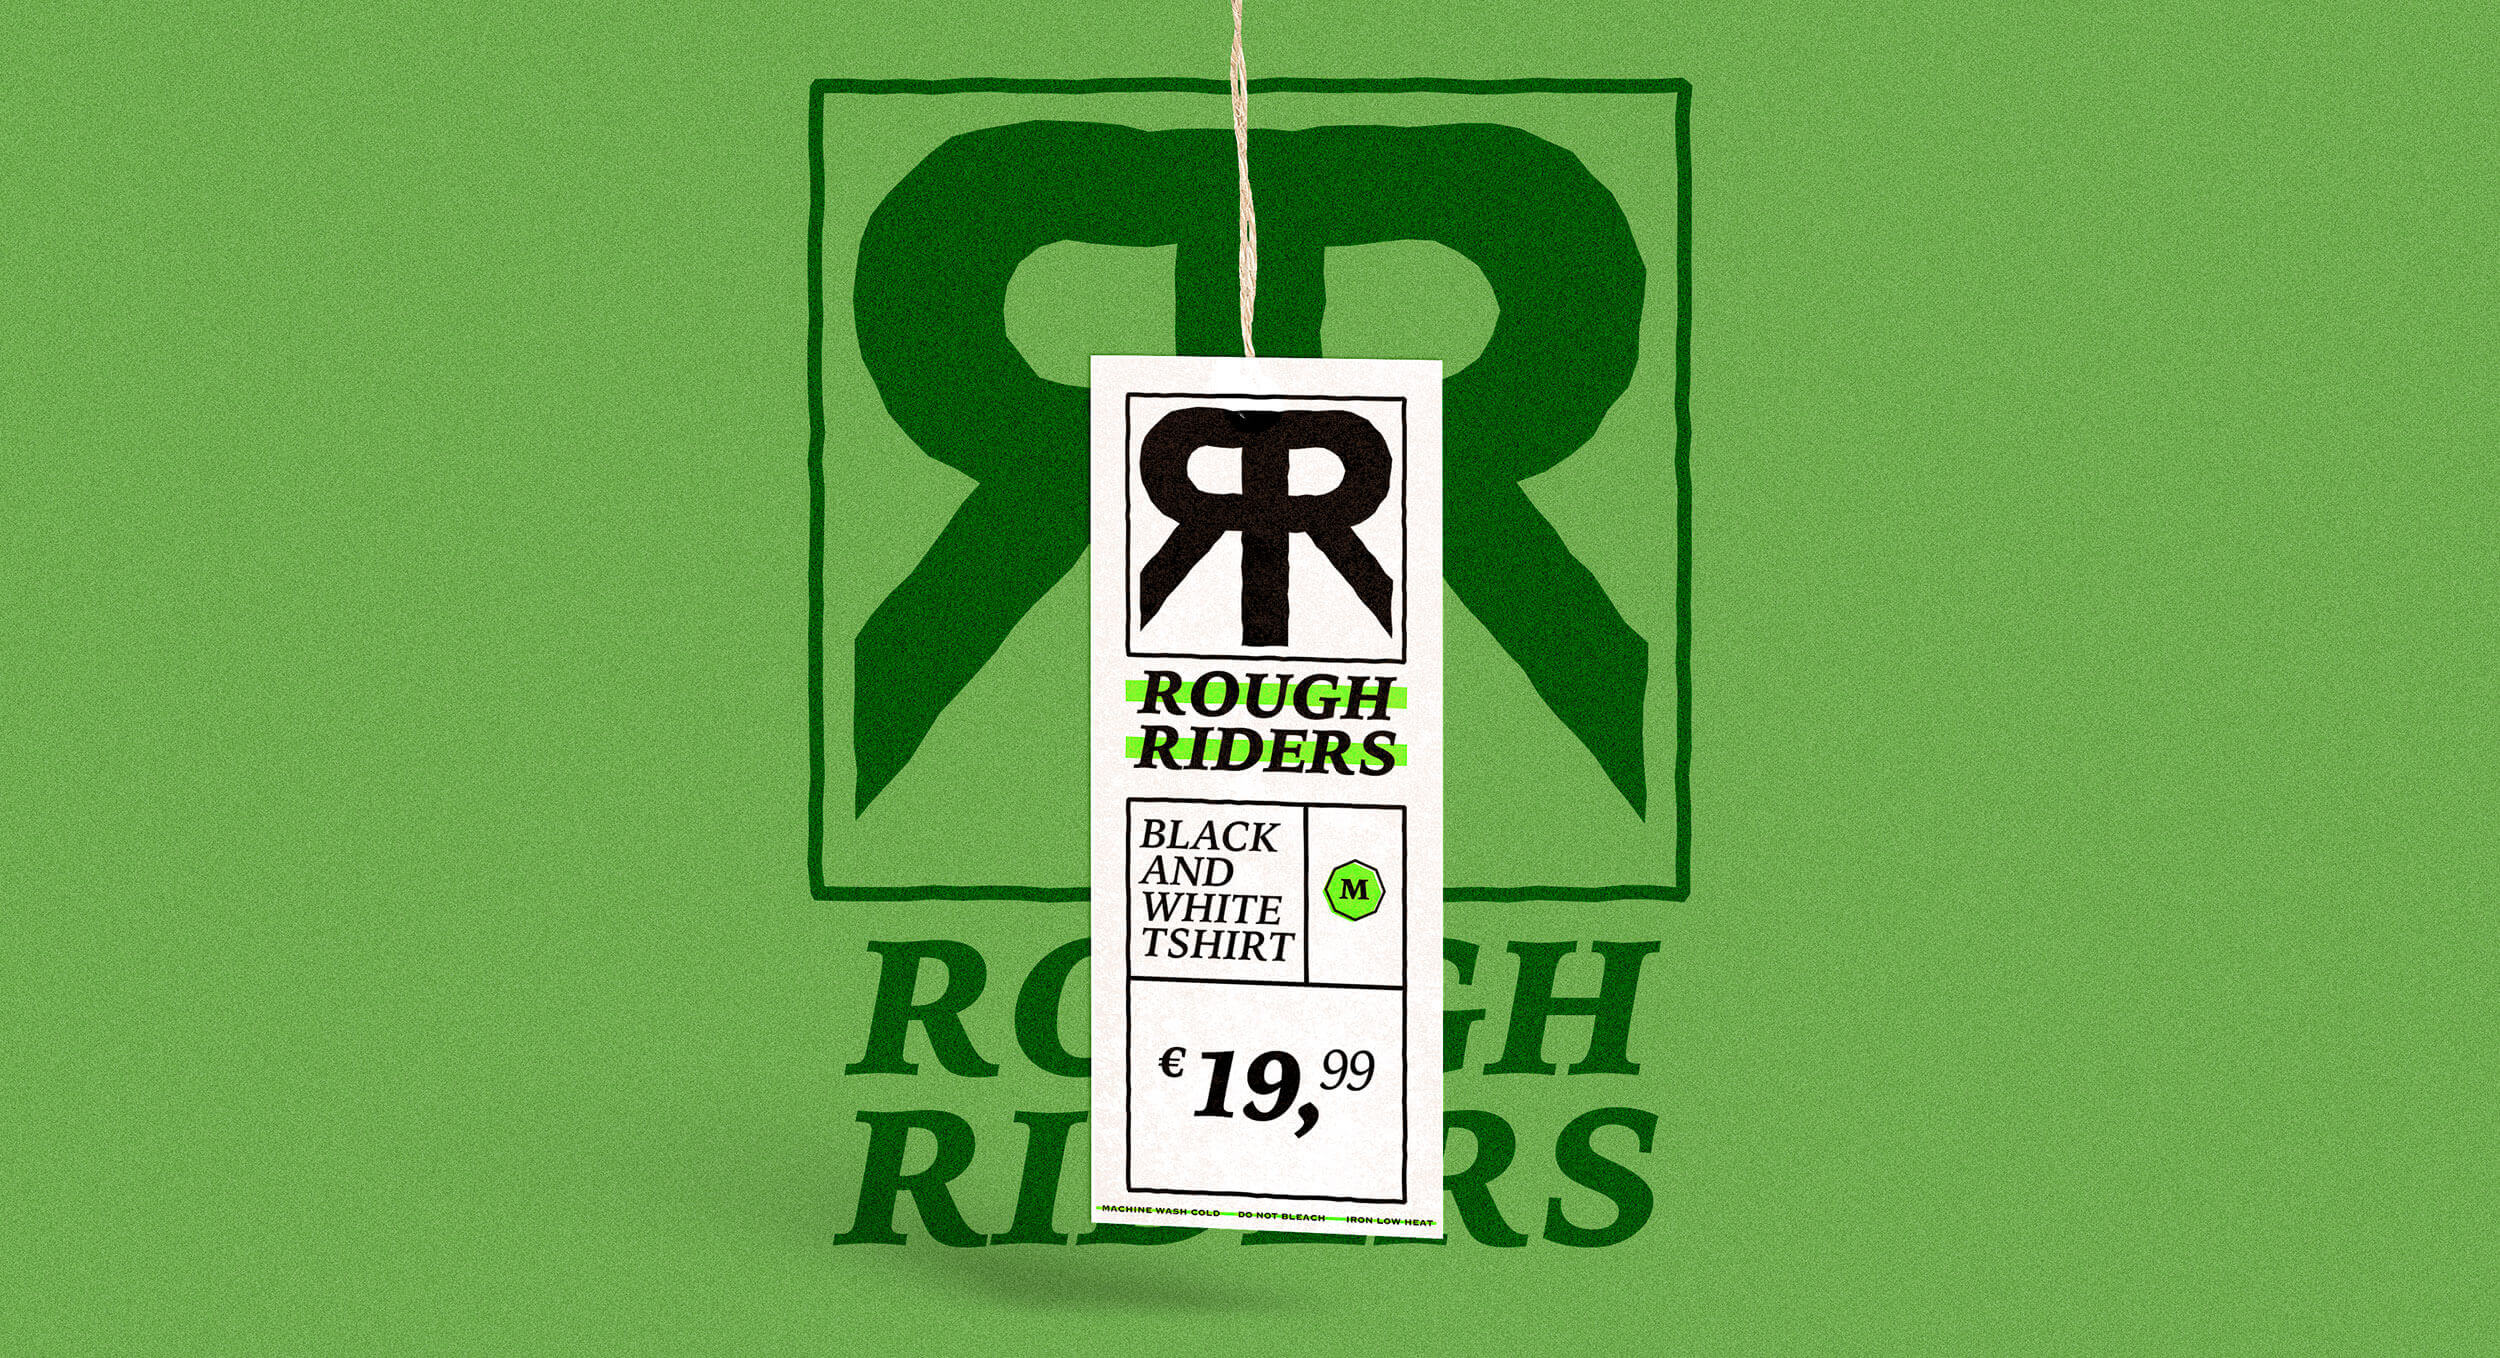 Rough riders cover image